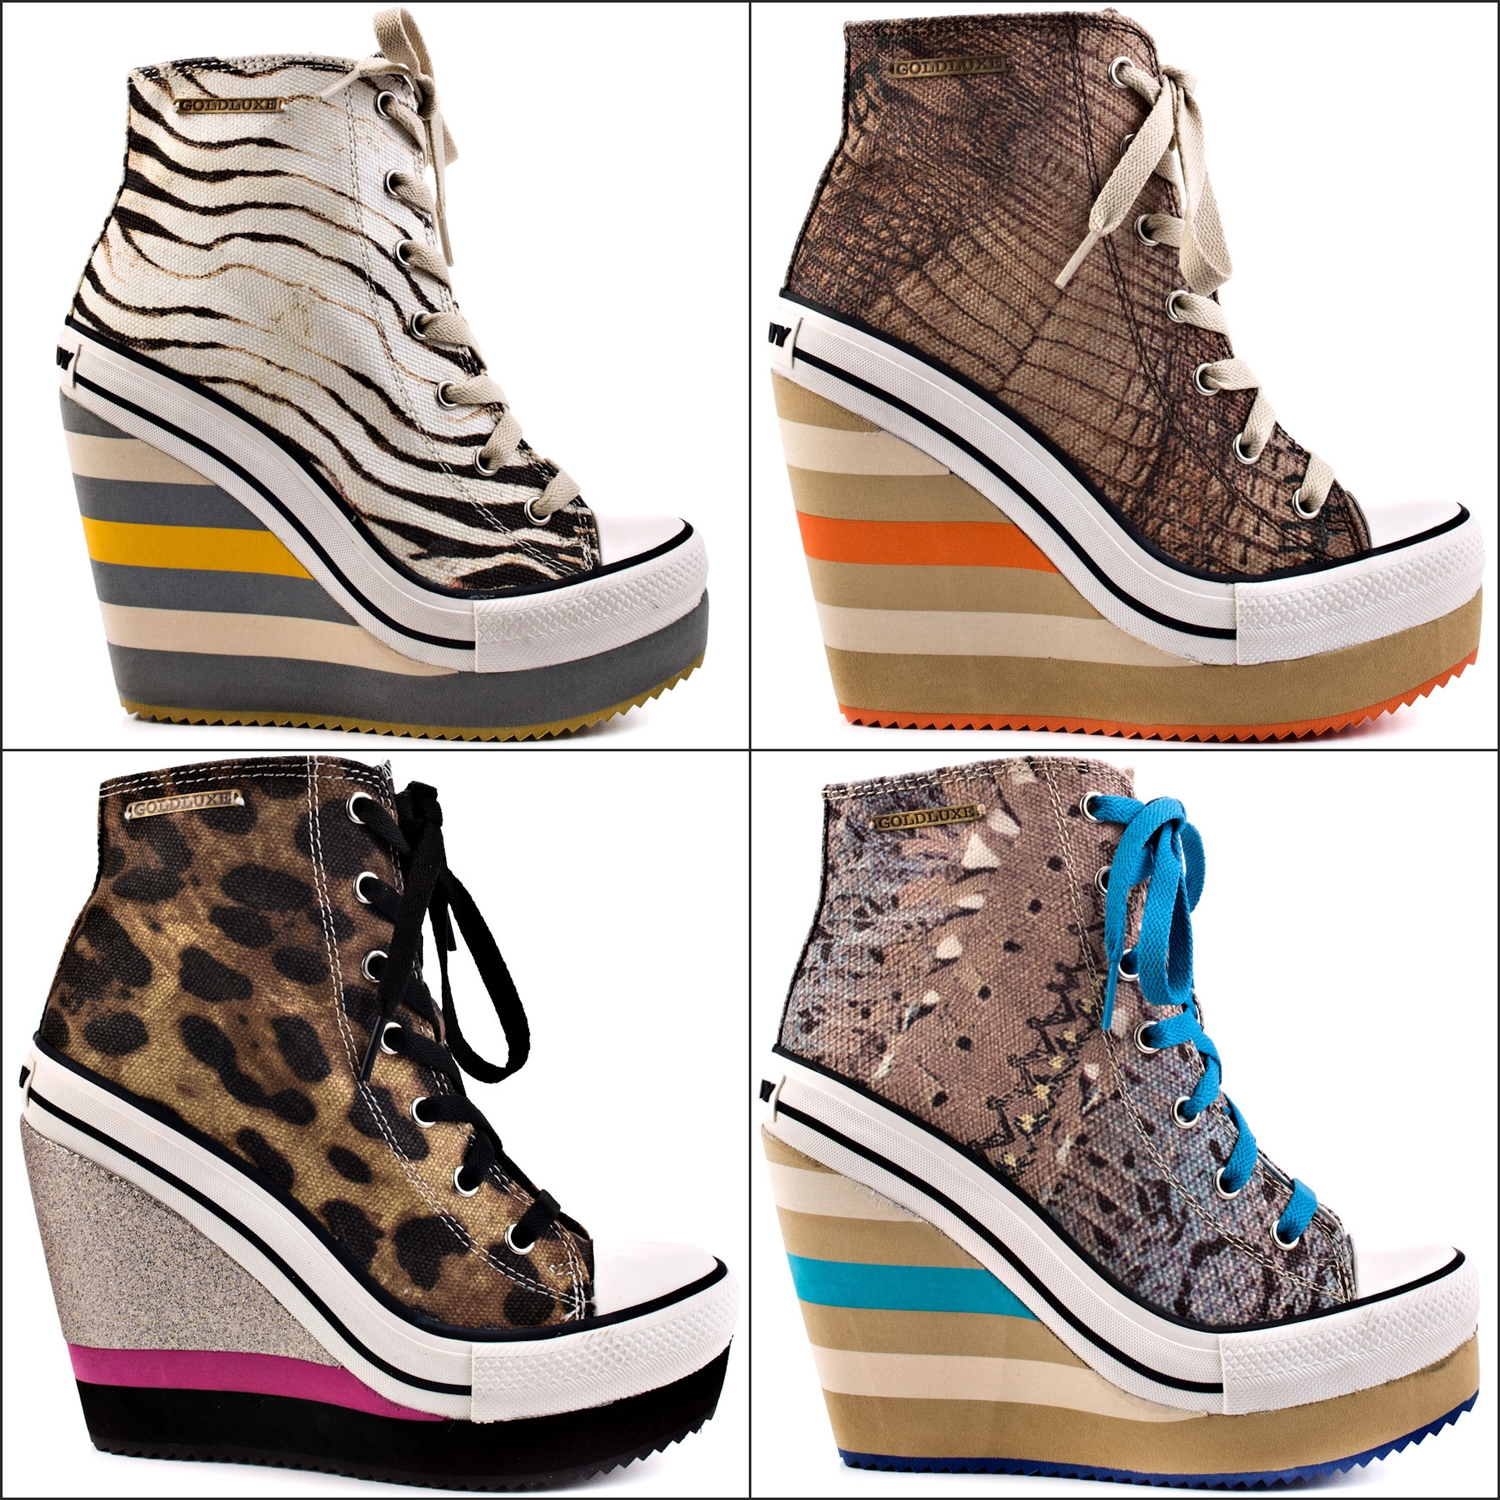 f35321f38626 Rock candy high heel wedges rock candy high heel wedges jpg 1500x1500 Rock  candy high heel